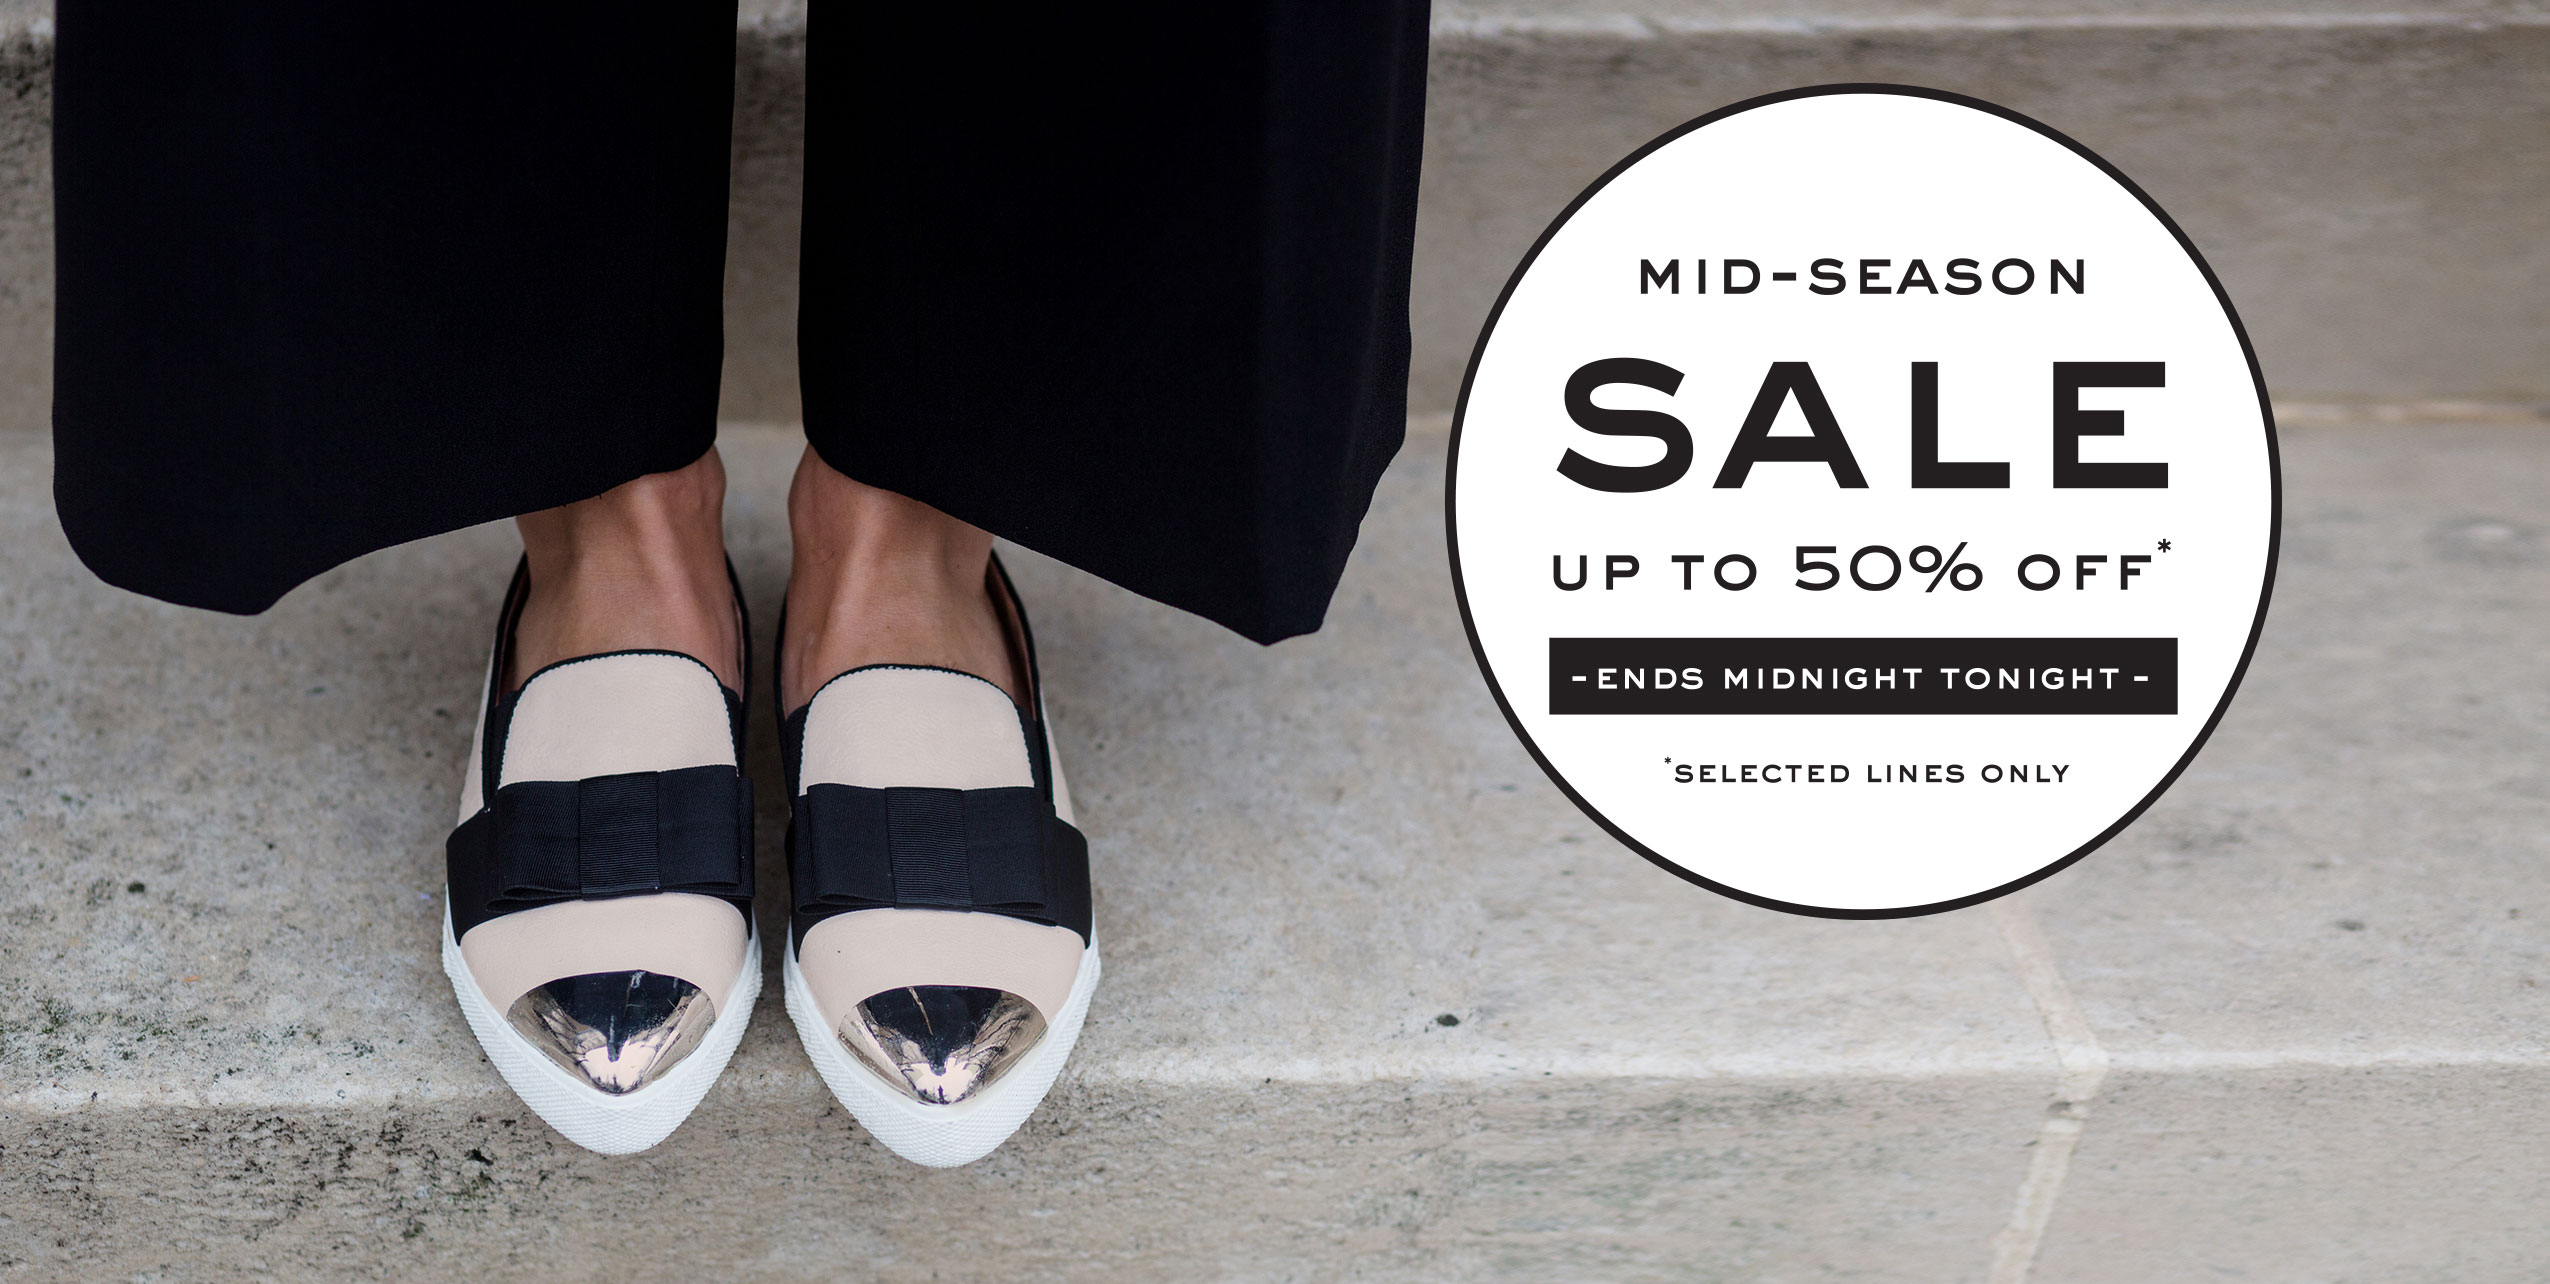 Mid-Season Sale - Up to 50% off - Ends Midnight Tonight